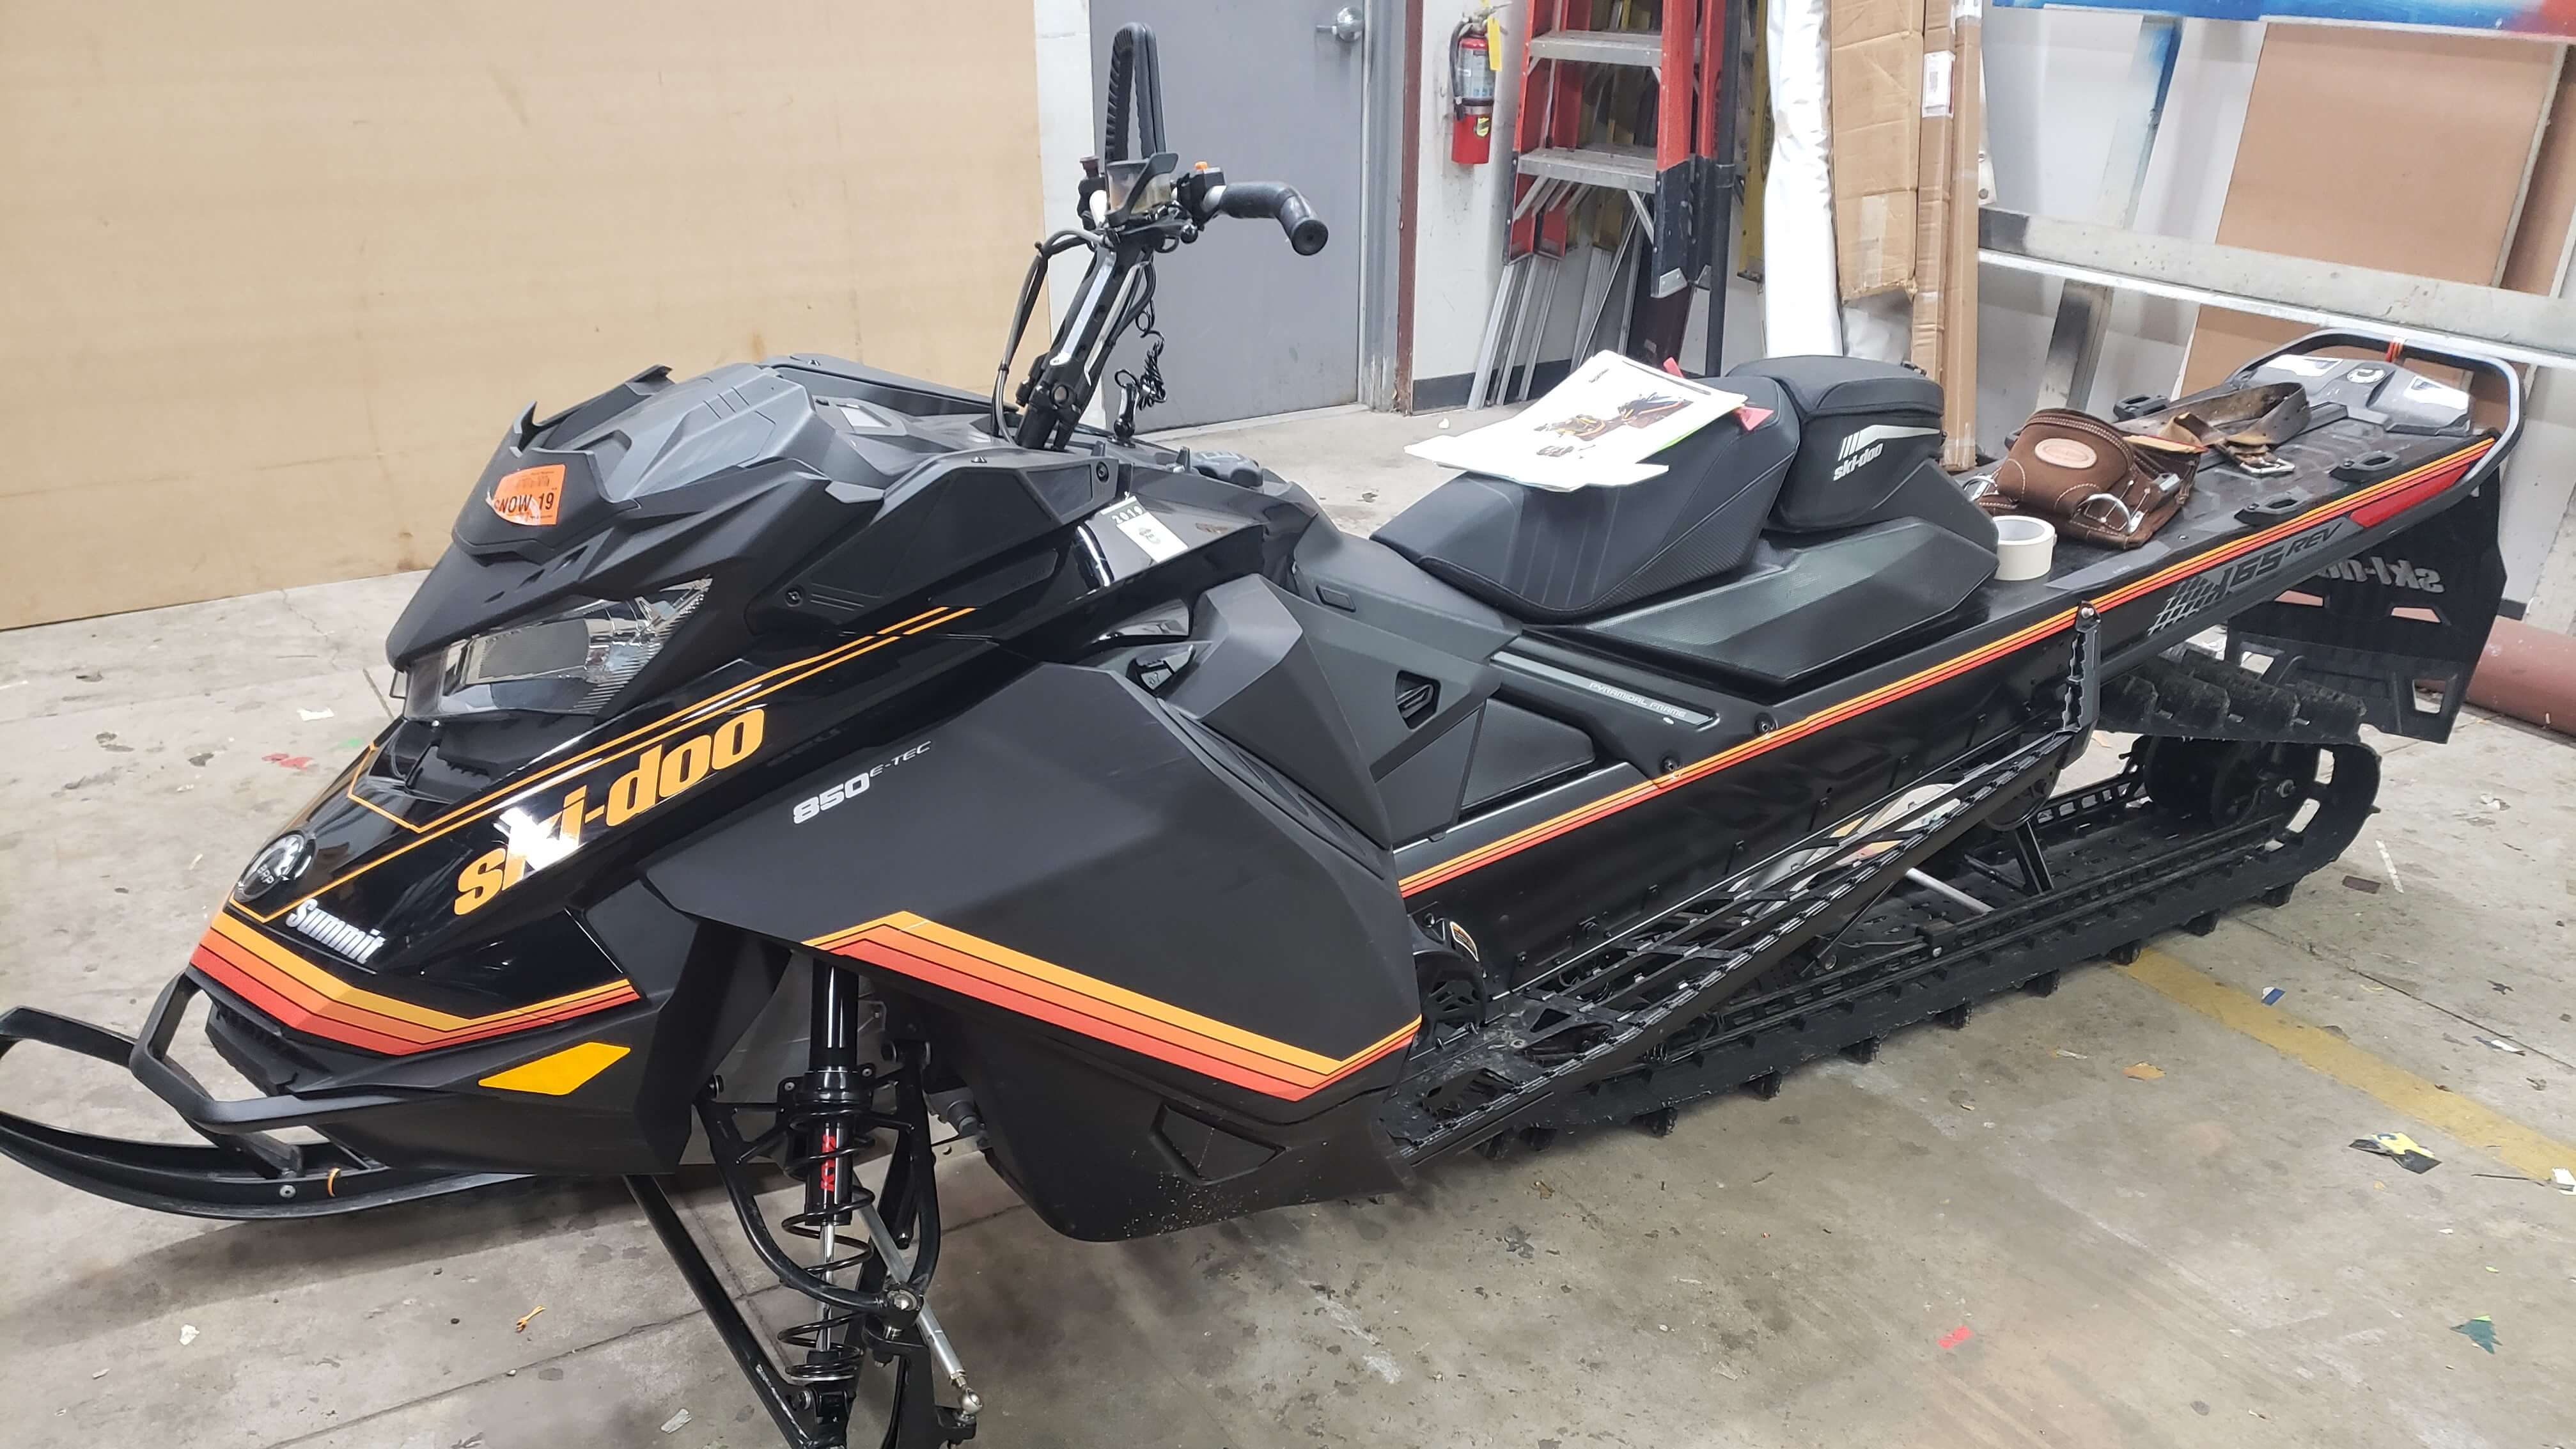 Ski Doo Snowmobile Pinstriping on Snowmobile in Signs and Lines by Stretch Garage